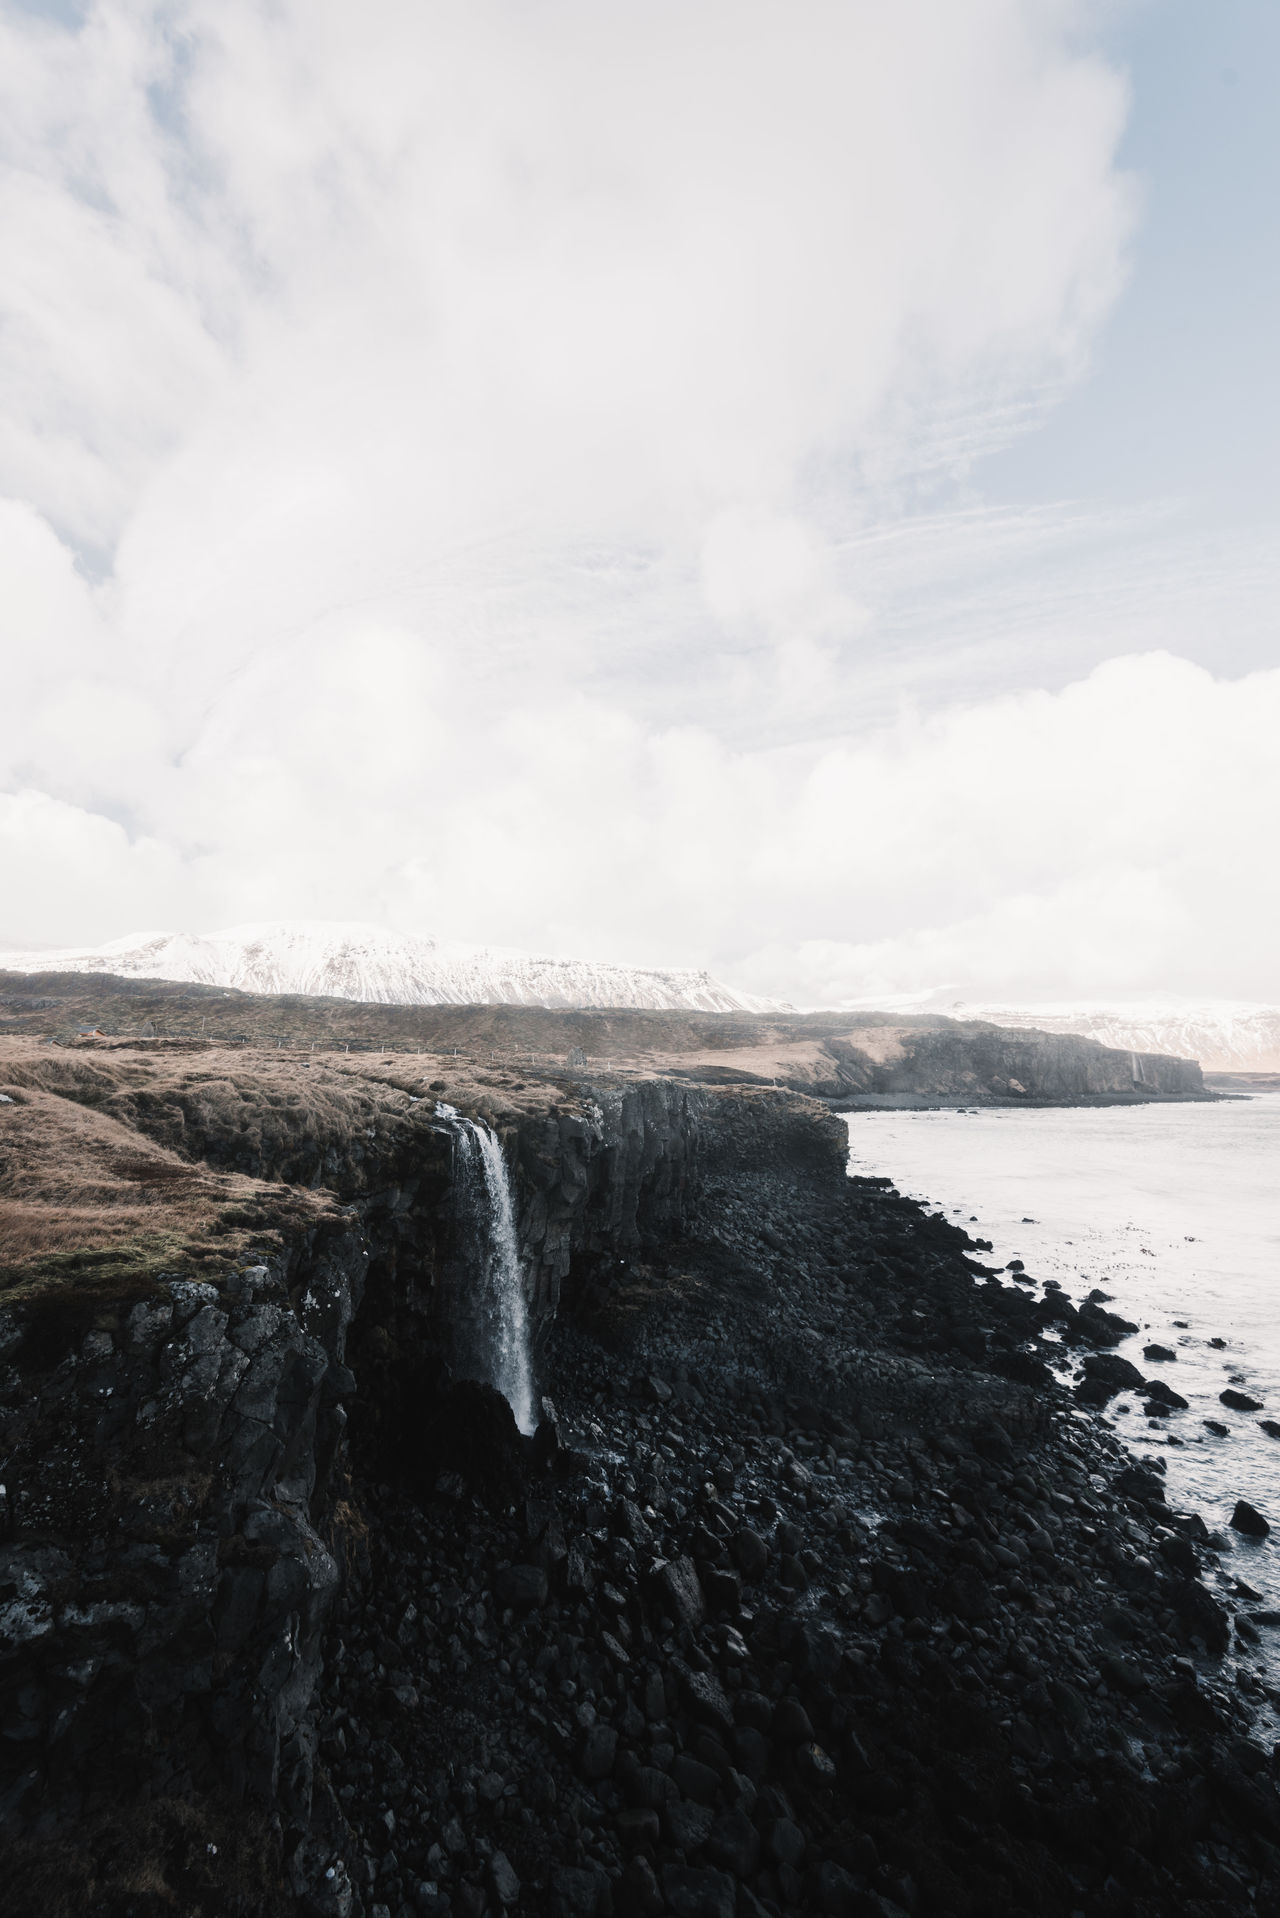 Iceland coast landscape with rough sea Beauty In Nature Day Horizon Over Water Motion Nature No People Outdoors Rock - Object Scenics Sea Sky Tranquil Scene Tranquility Water Waterfall